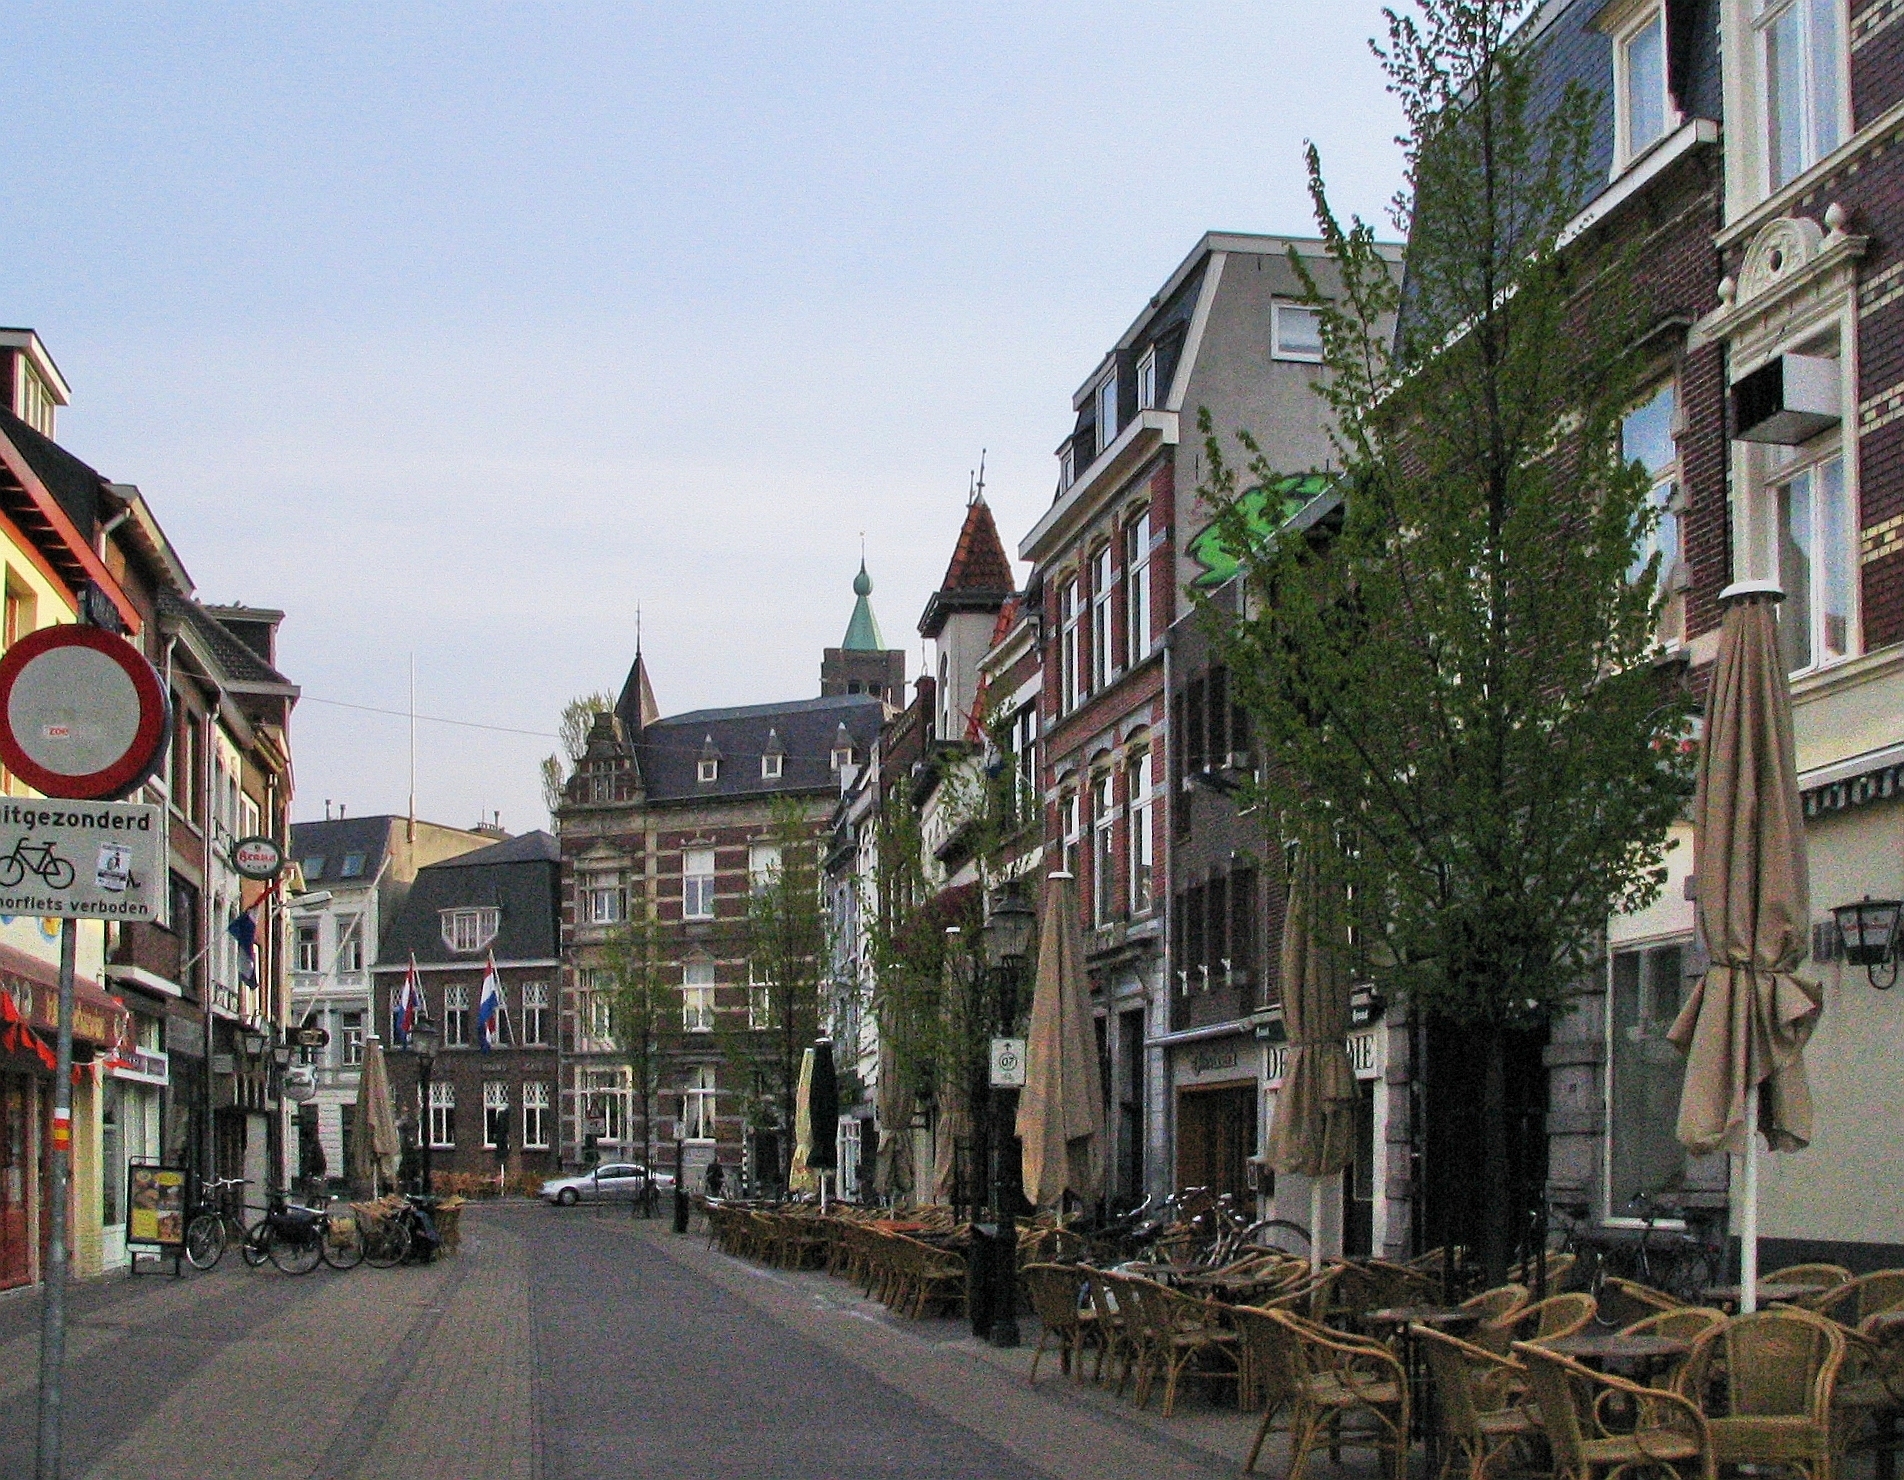 File:De Parade, Venlo (Limburg, NL)IMG 4869.JPG - Wikipedia, the free ...